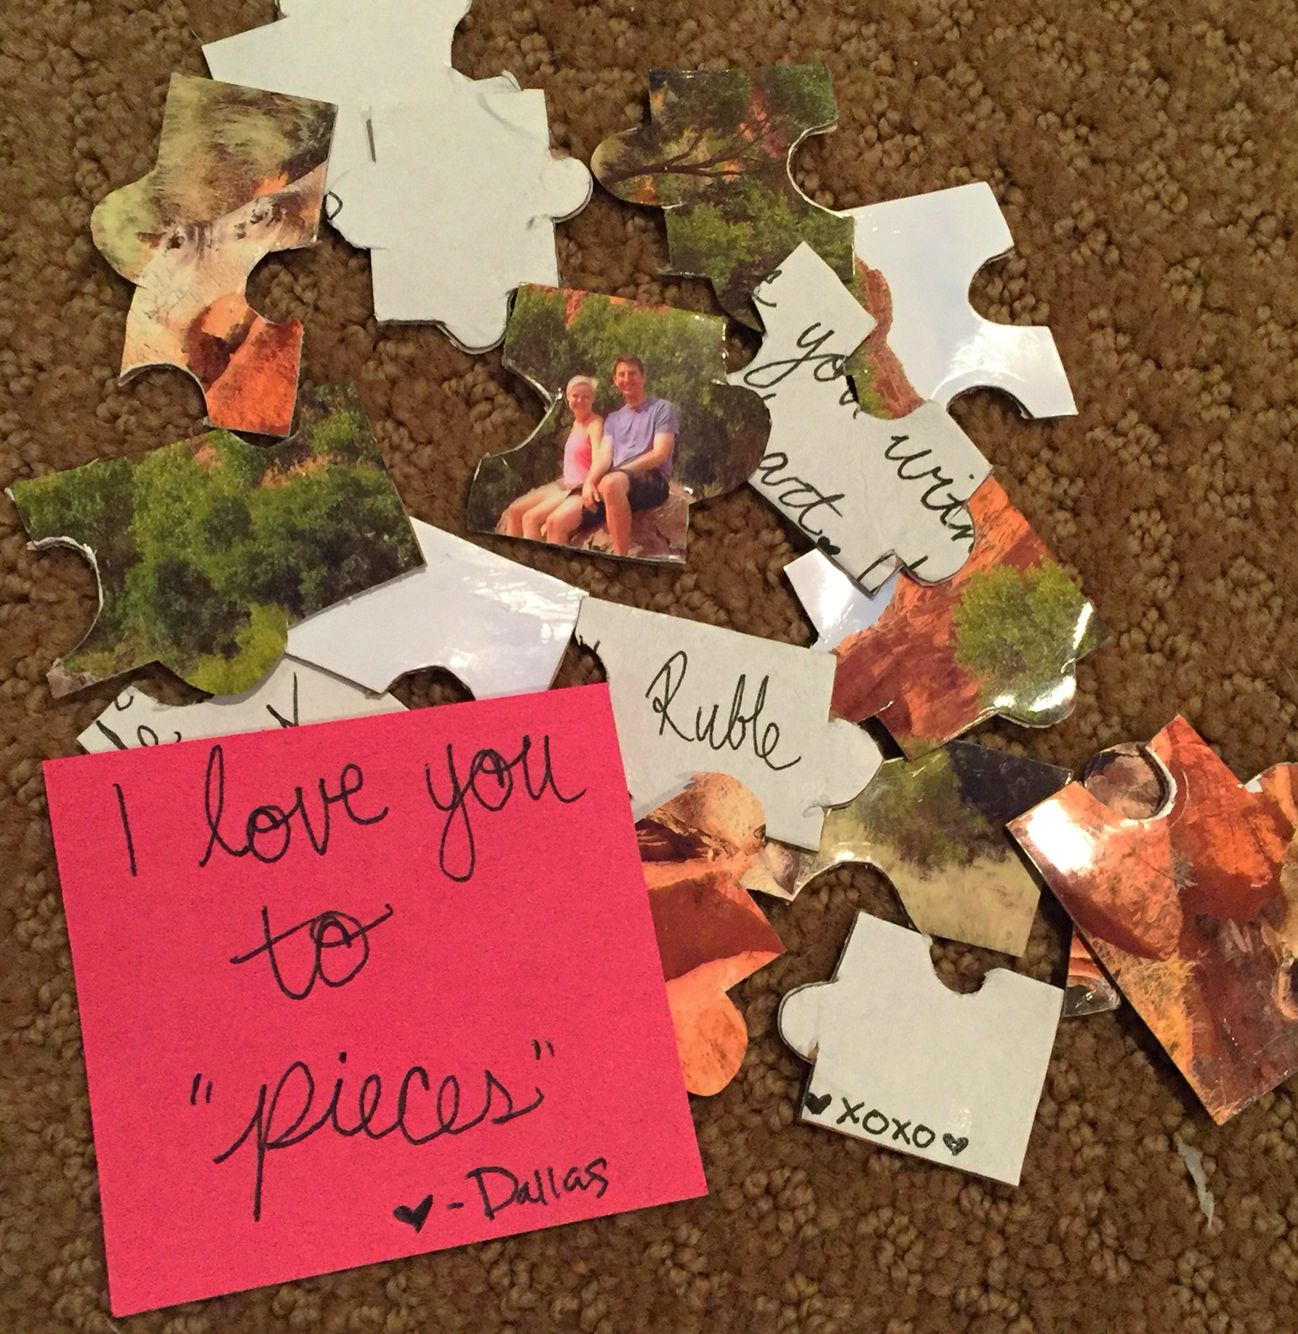 Christmas Gift Ideas For Long Distance Boyfriend: Long Distance Relationship Gift. DIY Puzzle With Love Note